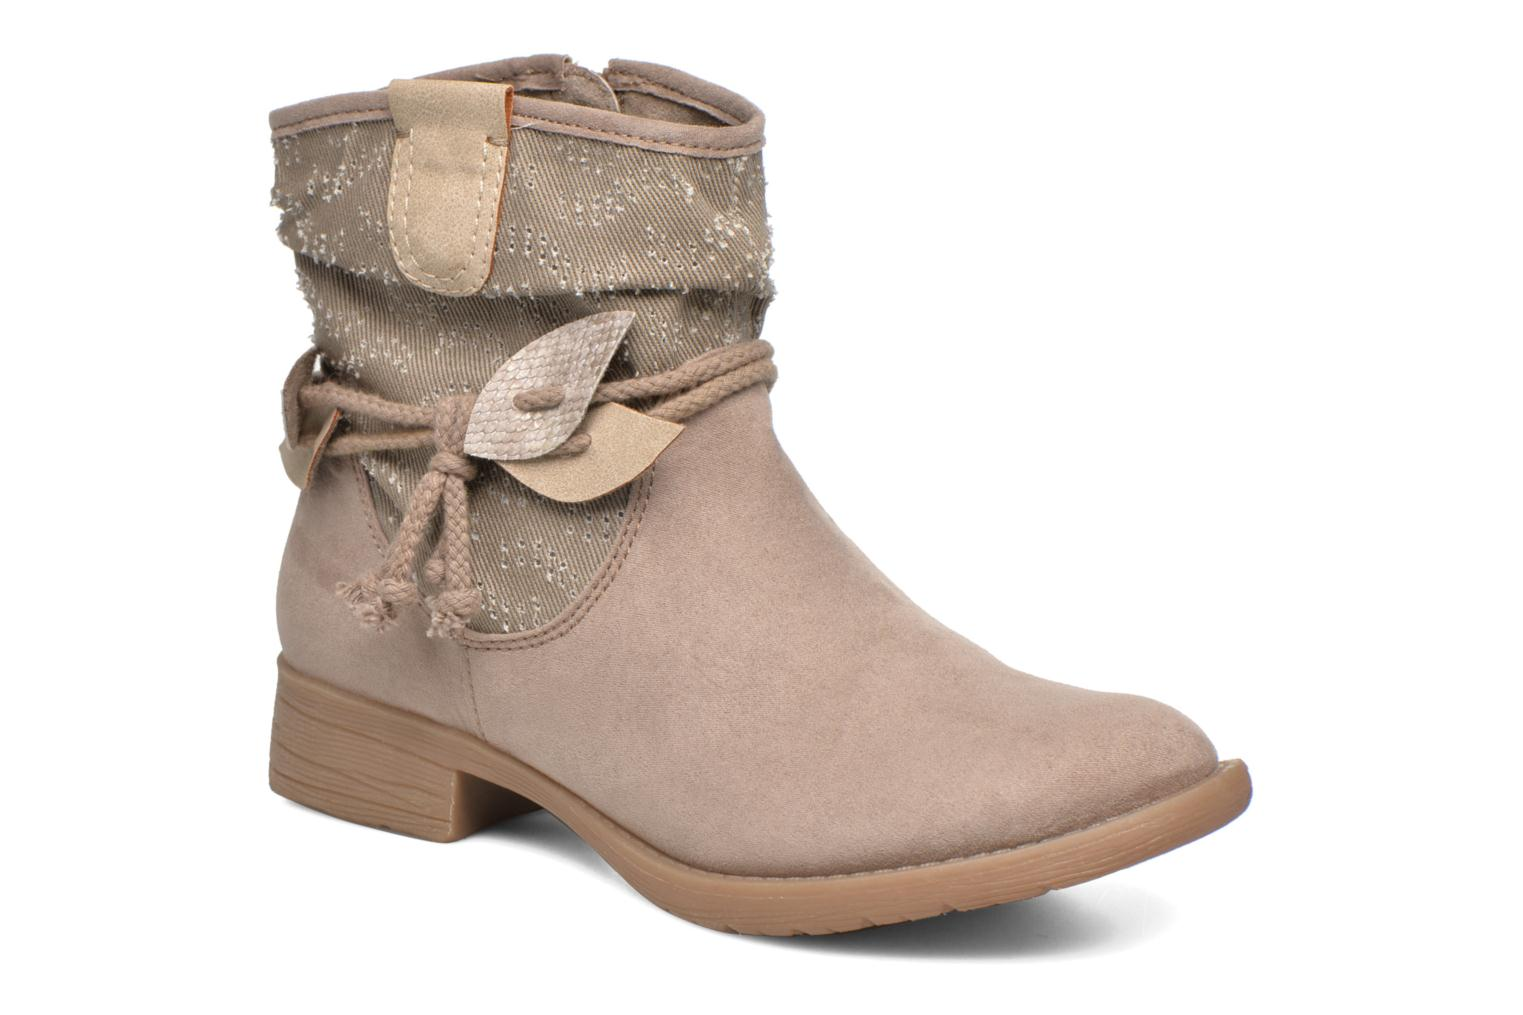 Marques Chaussure femme Jana shoes femme Garsea Light Taupe